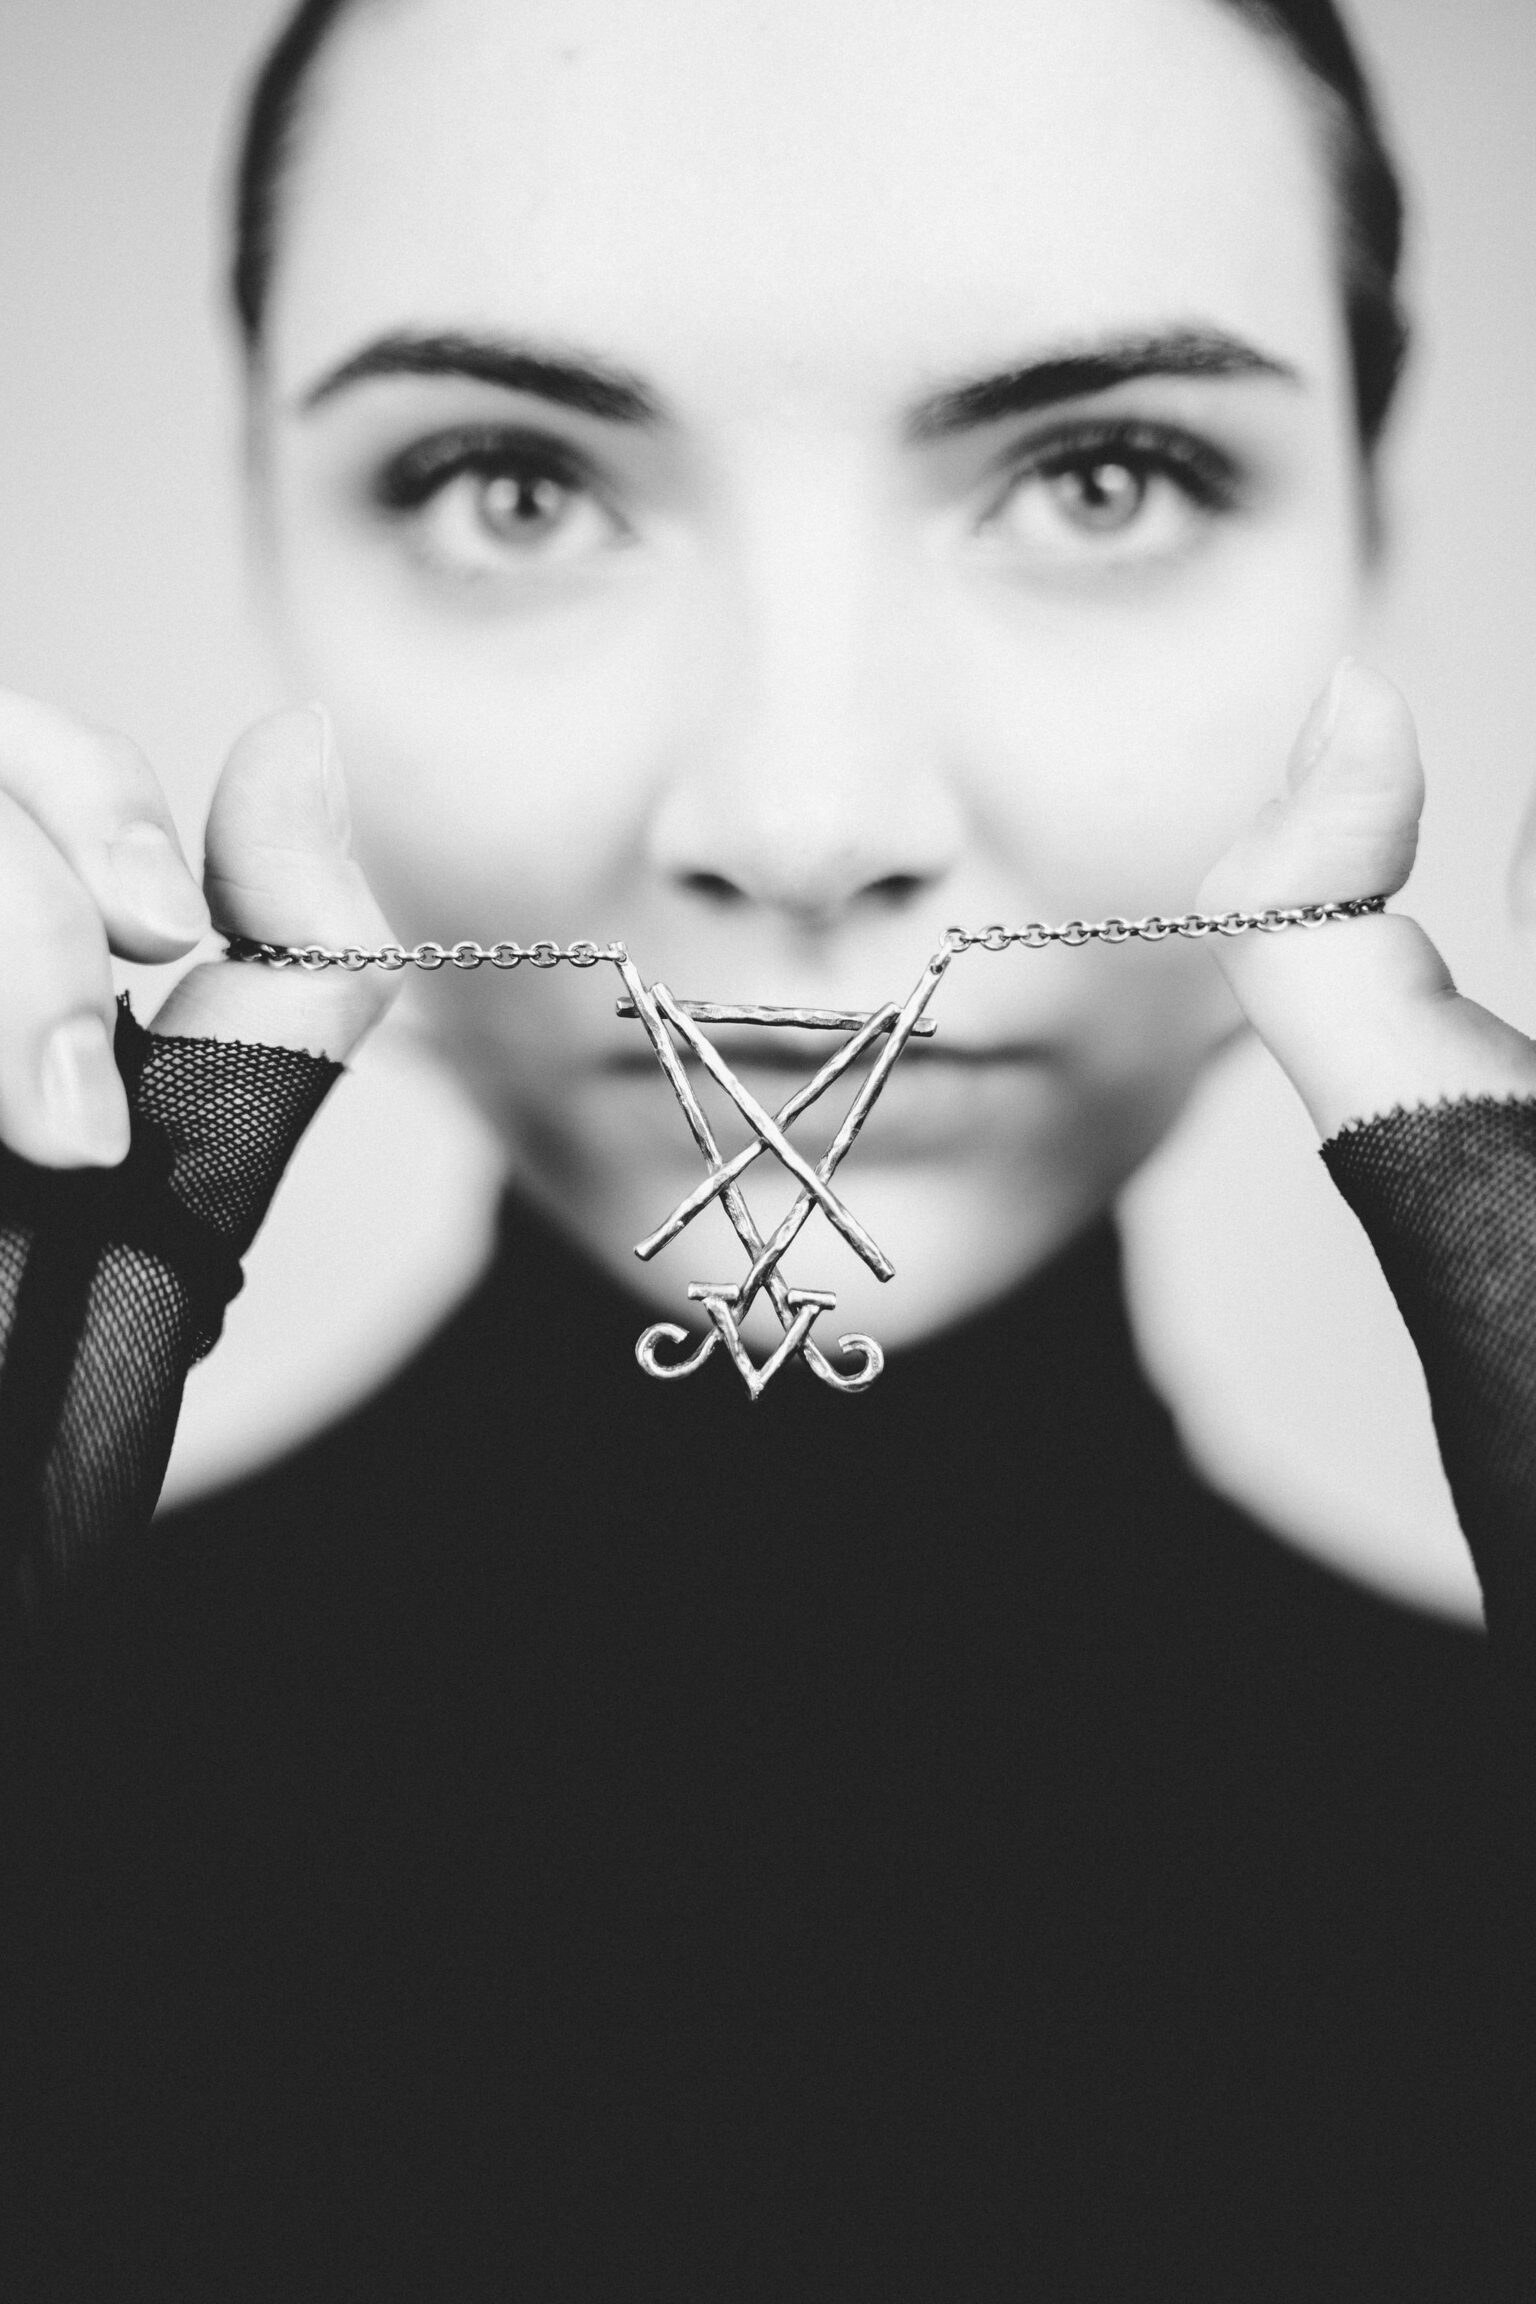 Lucifer Sigil necklace pendant by Atelier Maureen Centen